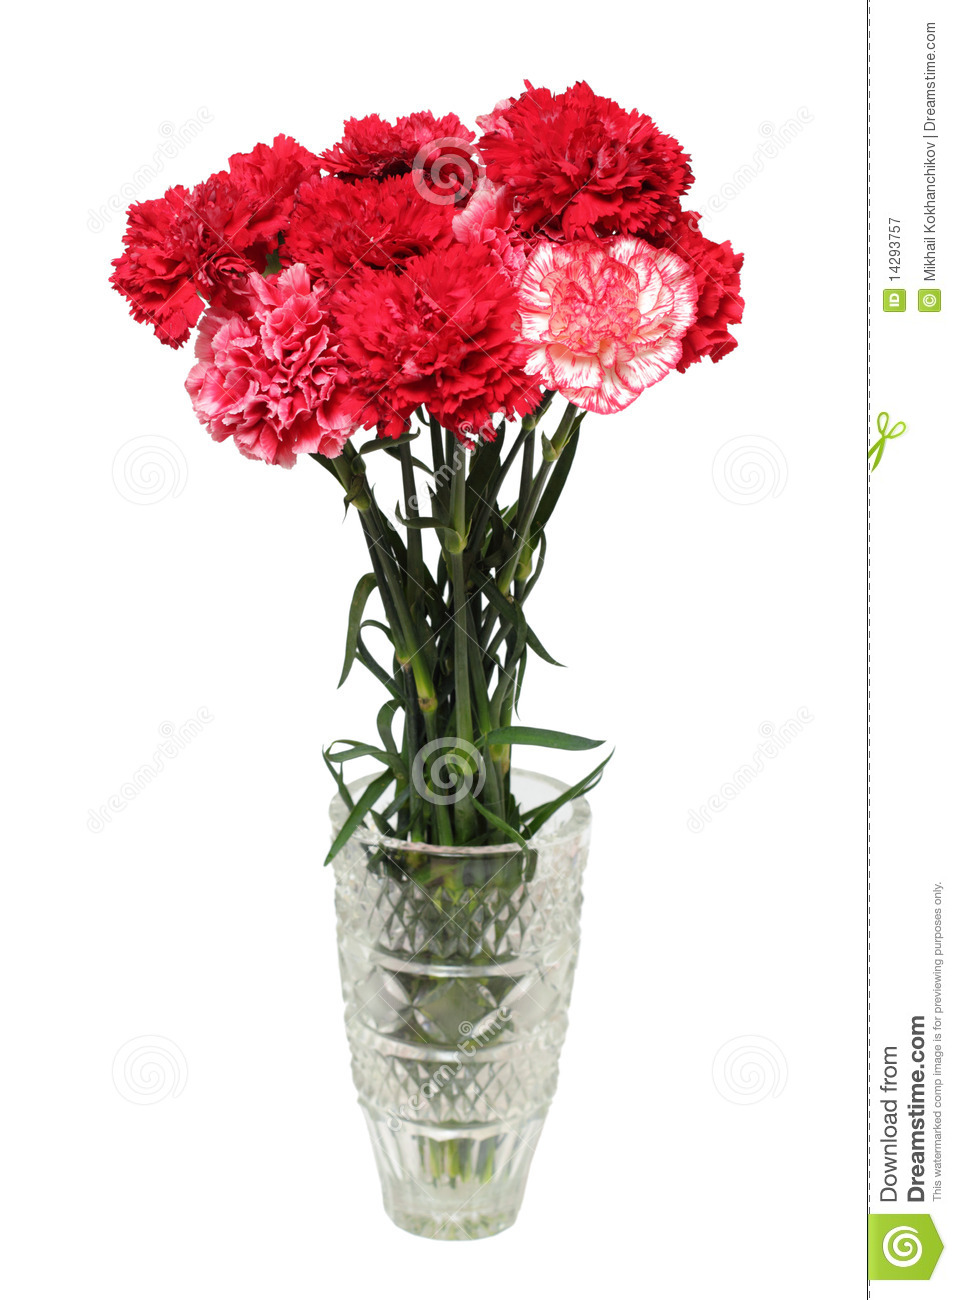 Carnation Flowers Bouquet In Vase Stock Image Image Of Flower